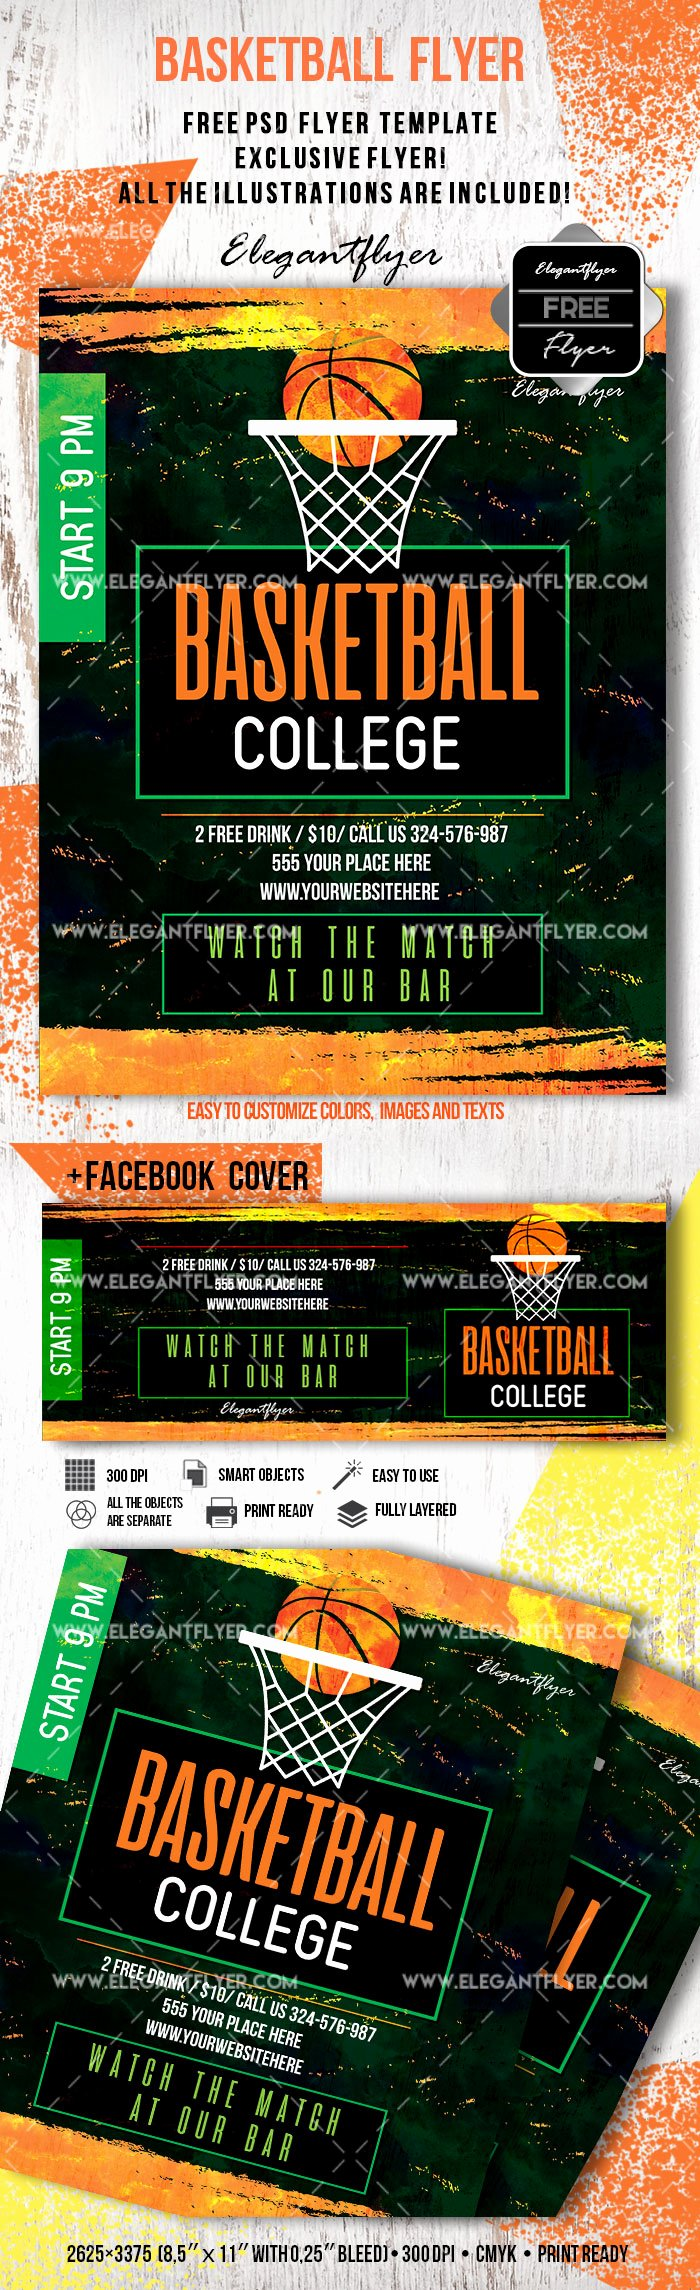 Basketball Flyer Template Free Beautiful Free Basketball Flyer Template – by Elegantflyer